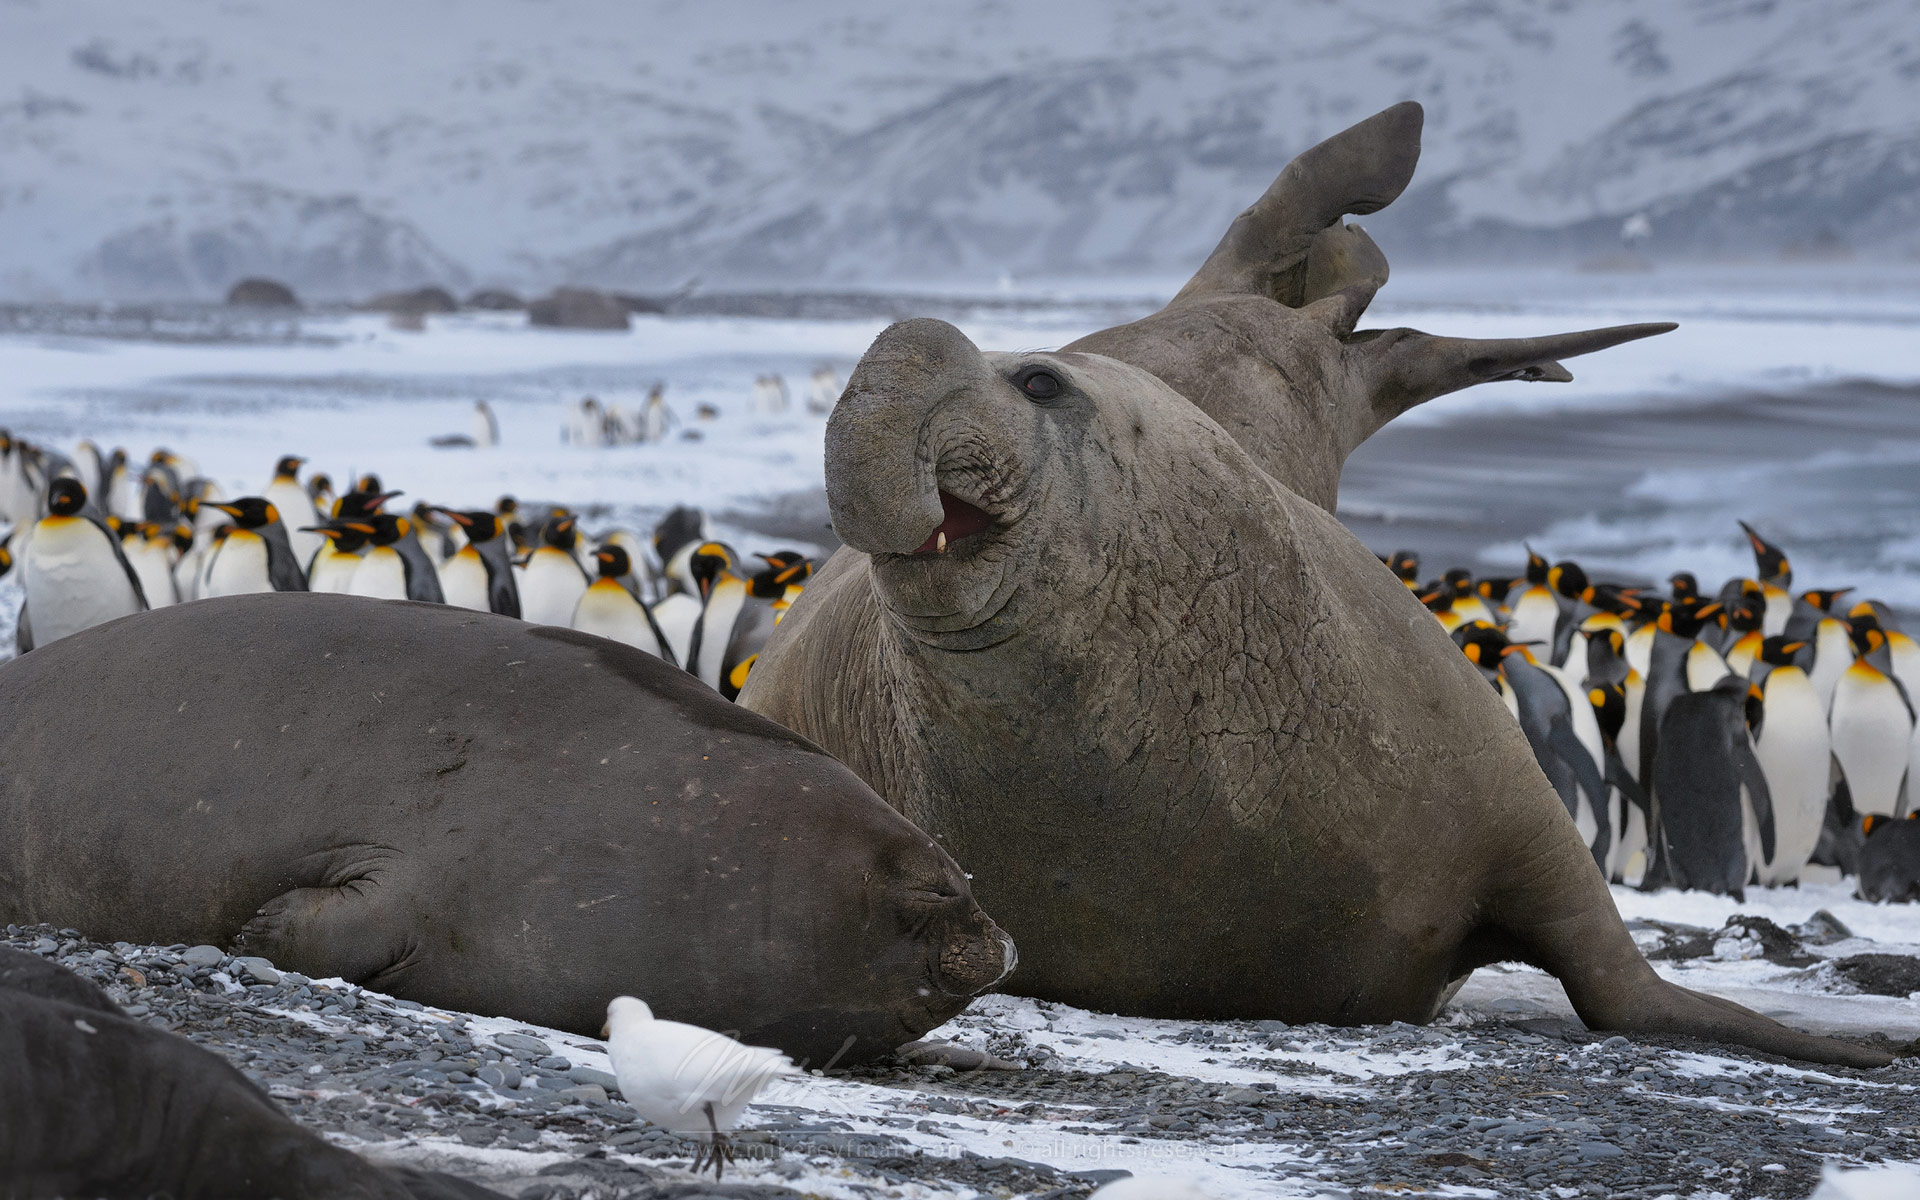 I will flitter as butterfly around your hat! Southern Elephant Seals (Mirounga leonina). Salisbury Plain, South Georgia, Sub-Antarctic.  - Southern-Elephant-Seals-Fur-Seals-South-Georgia-Sub-Antarctic - Mike Reyfman Photography